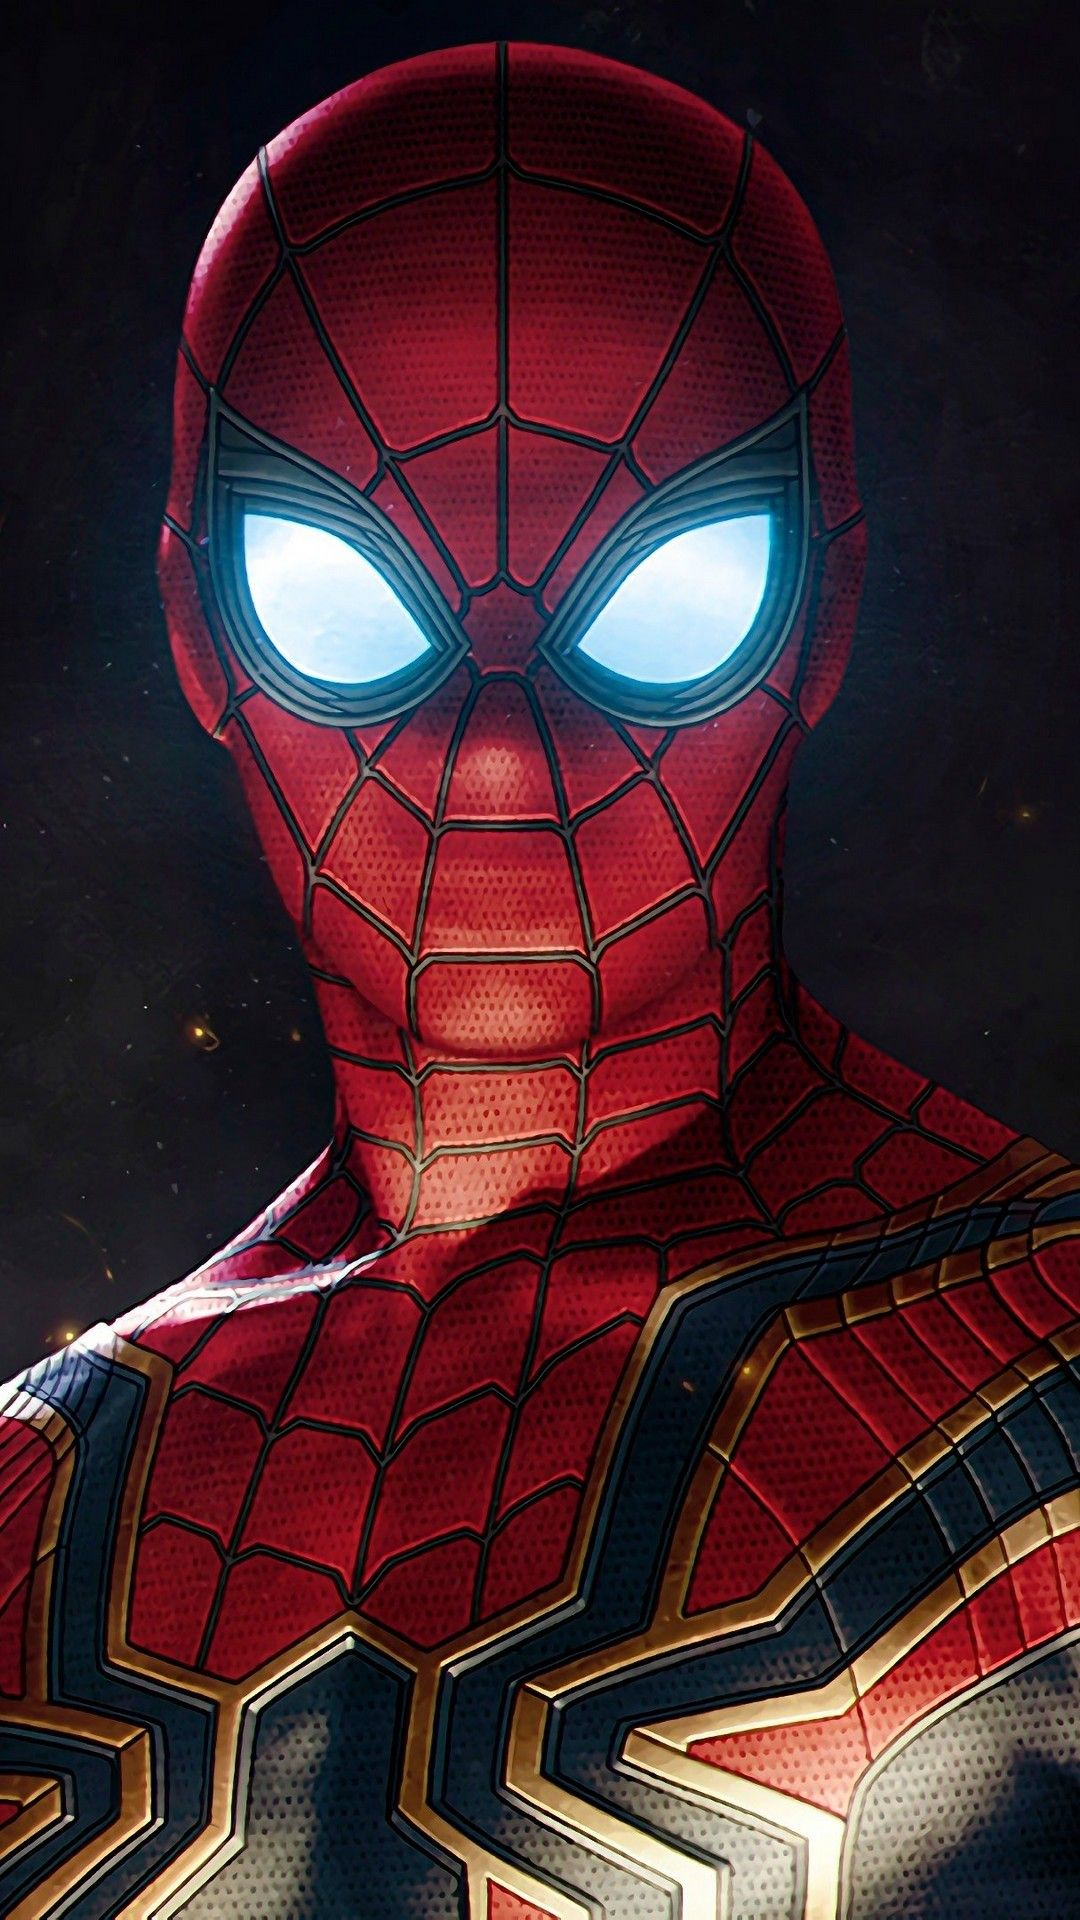 spiderman avengers infinity war iphone wallpaper - 2018 iphone